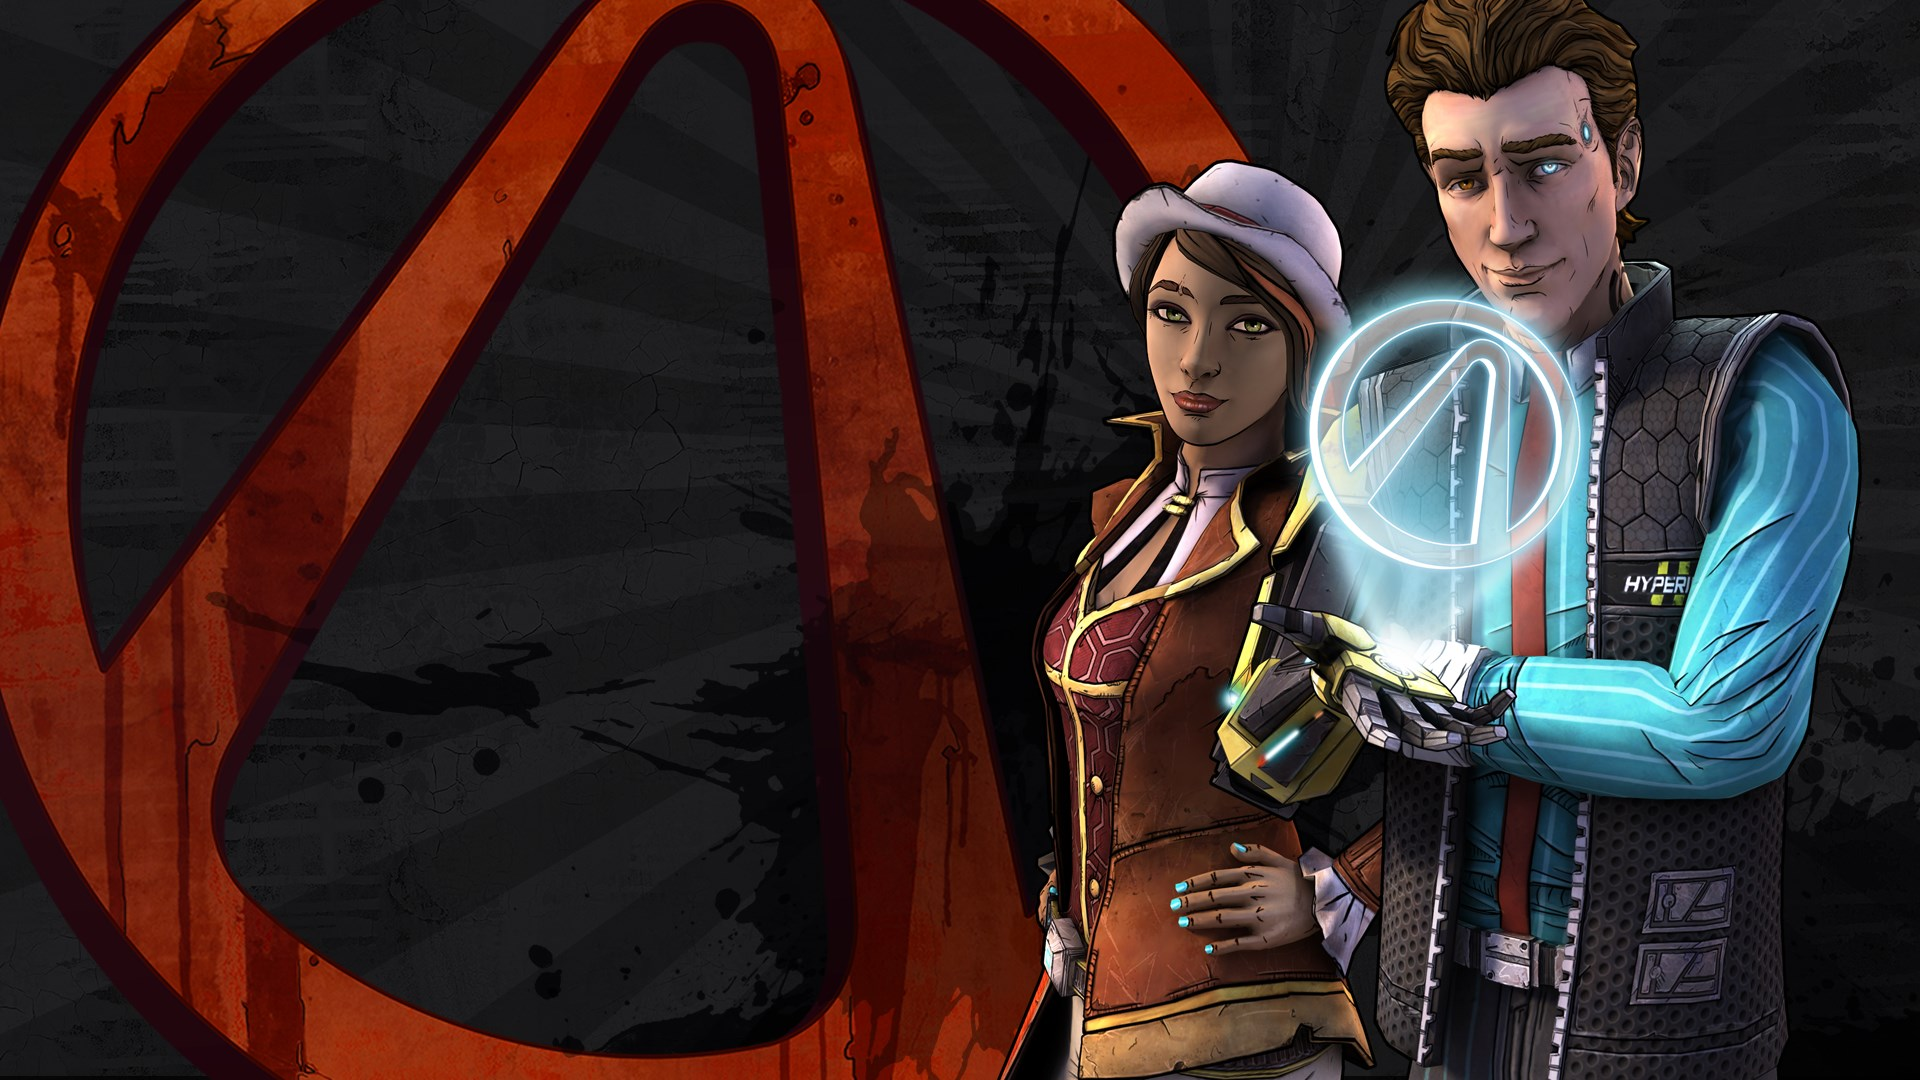 tales from the borderlands delisted